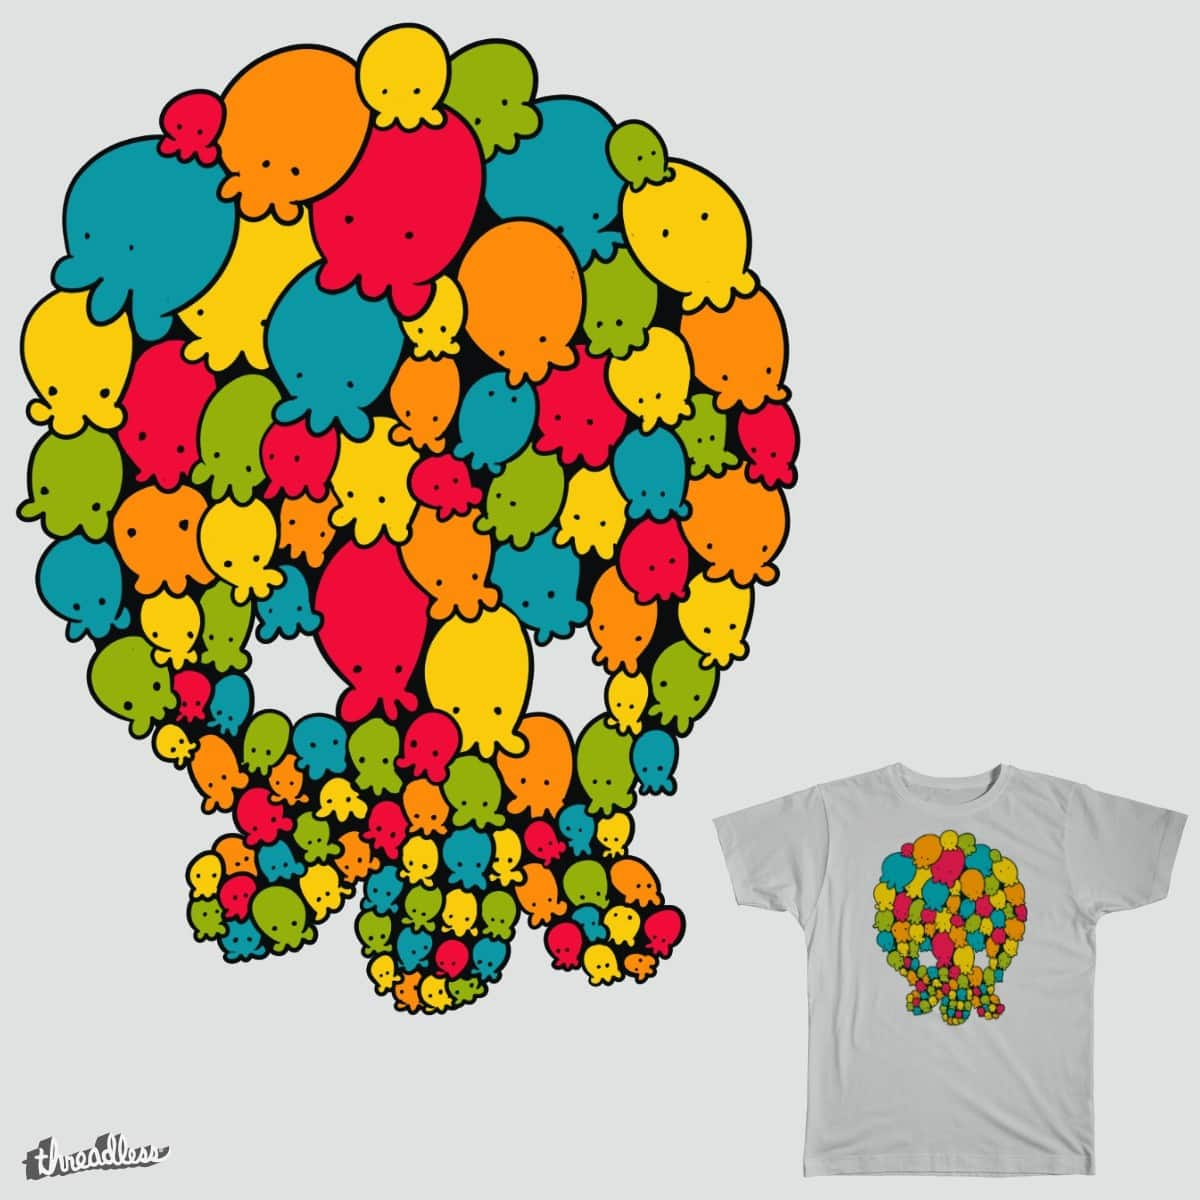 Squigglies by tankgingone on Threadless